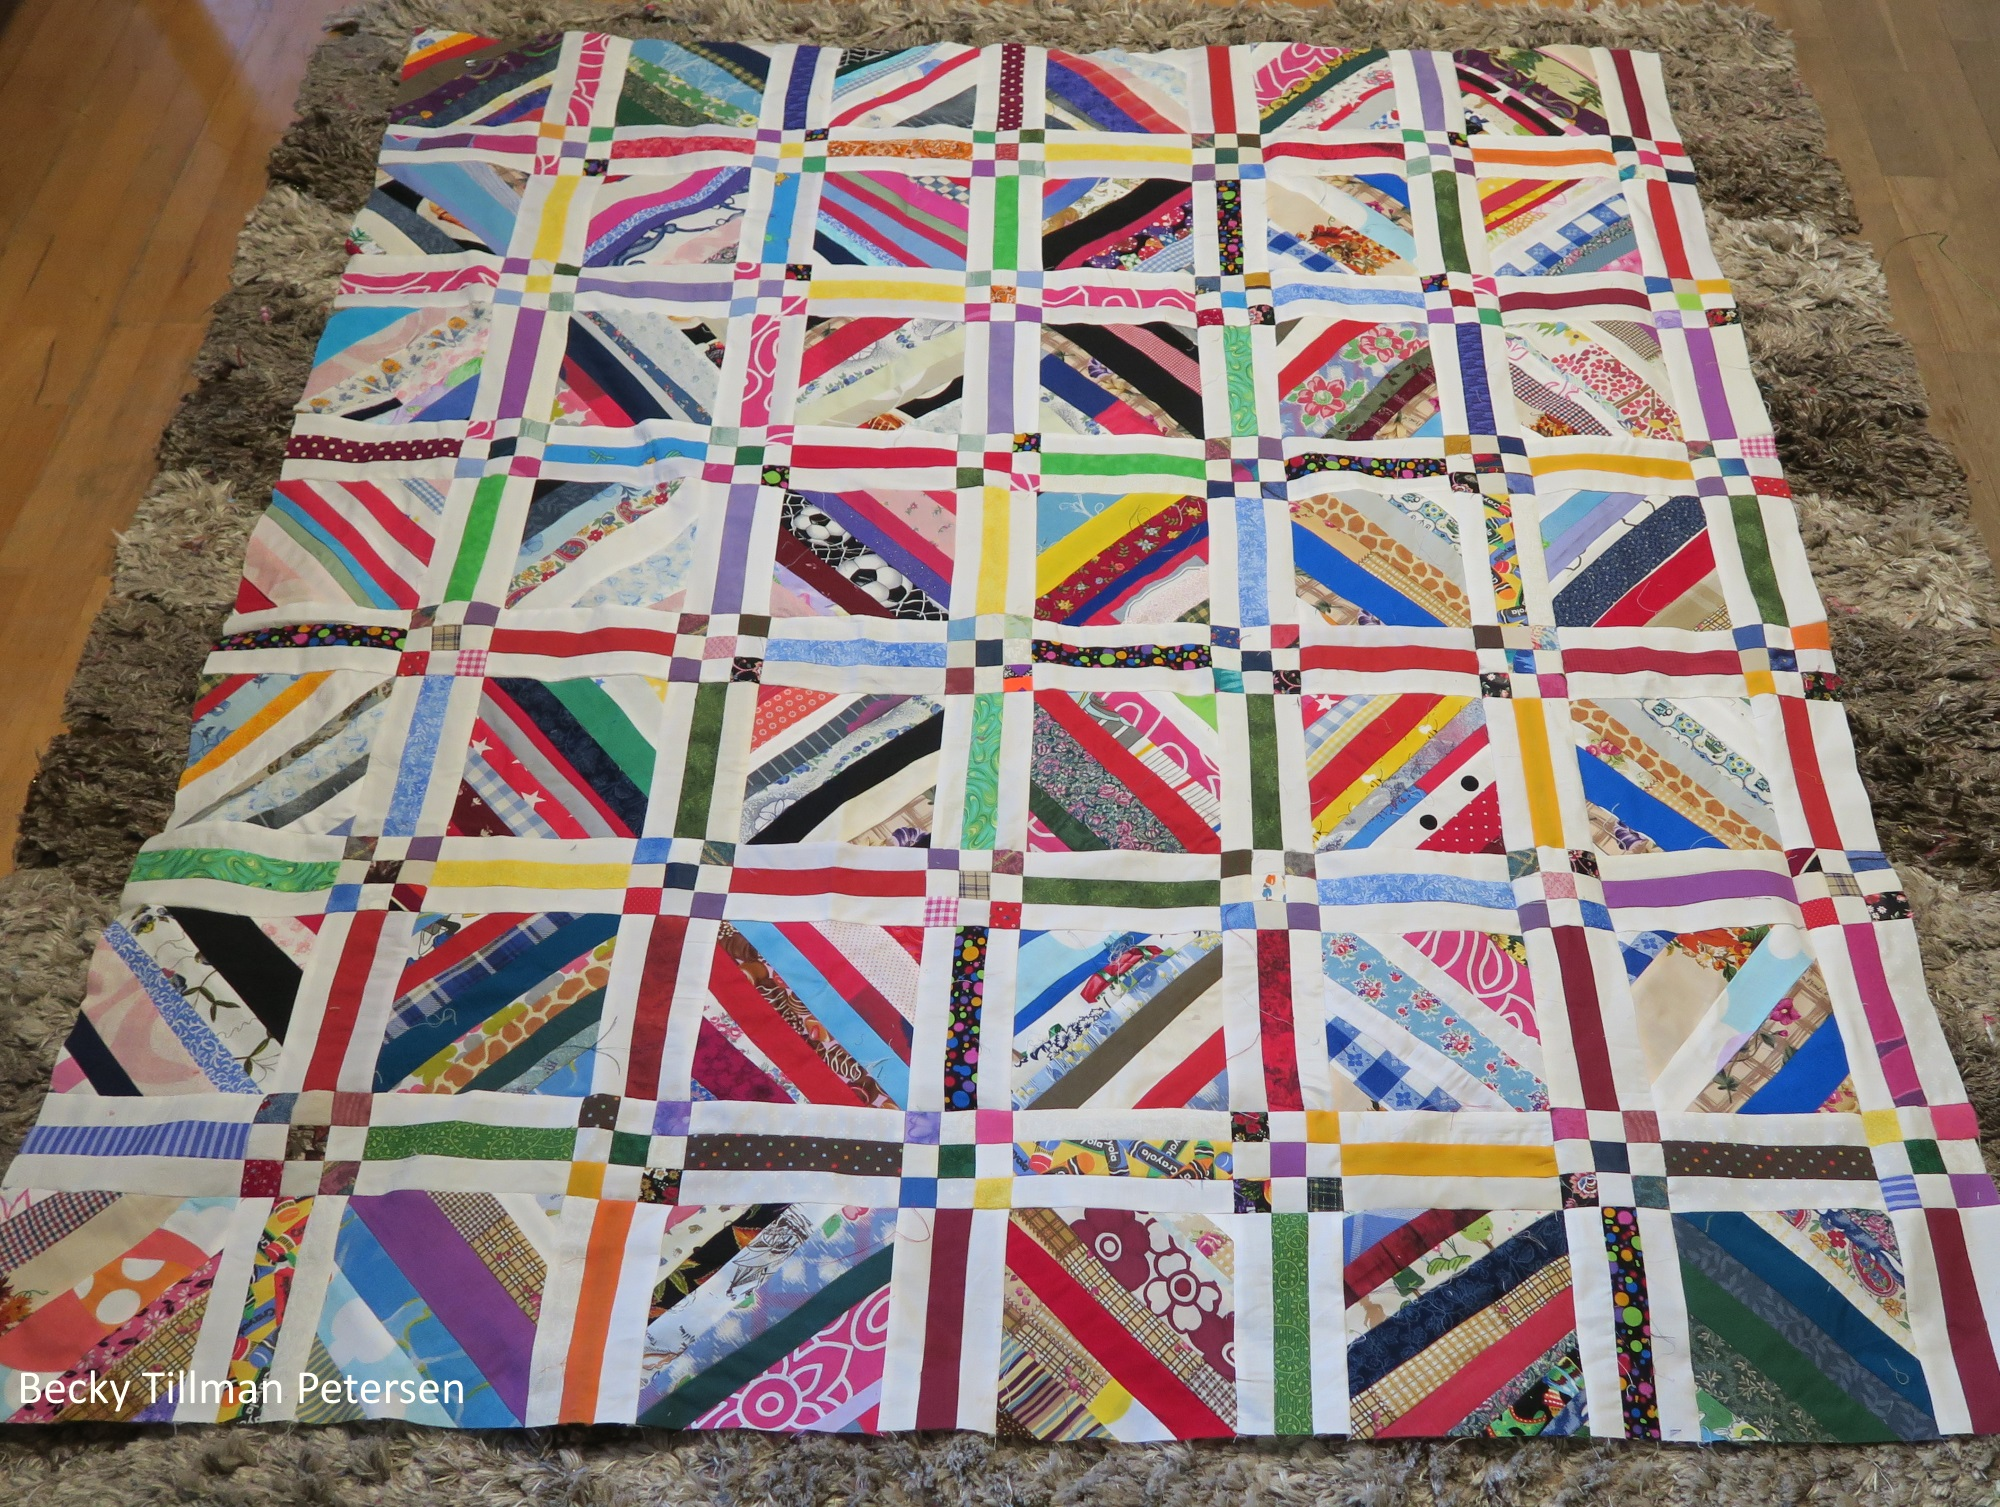 """It's currently 54""""x62"""" - getting to be a nice lap quilt size. Last week it felt like a baby quilt, so I'm making progress."""